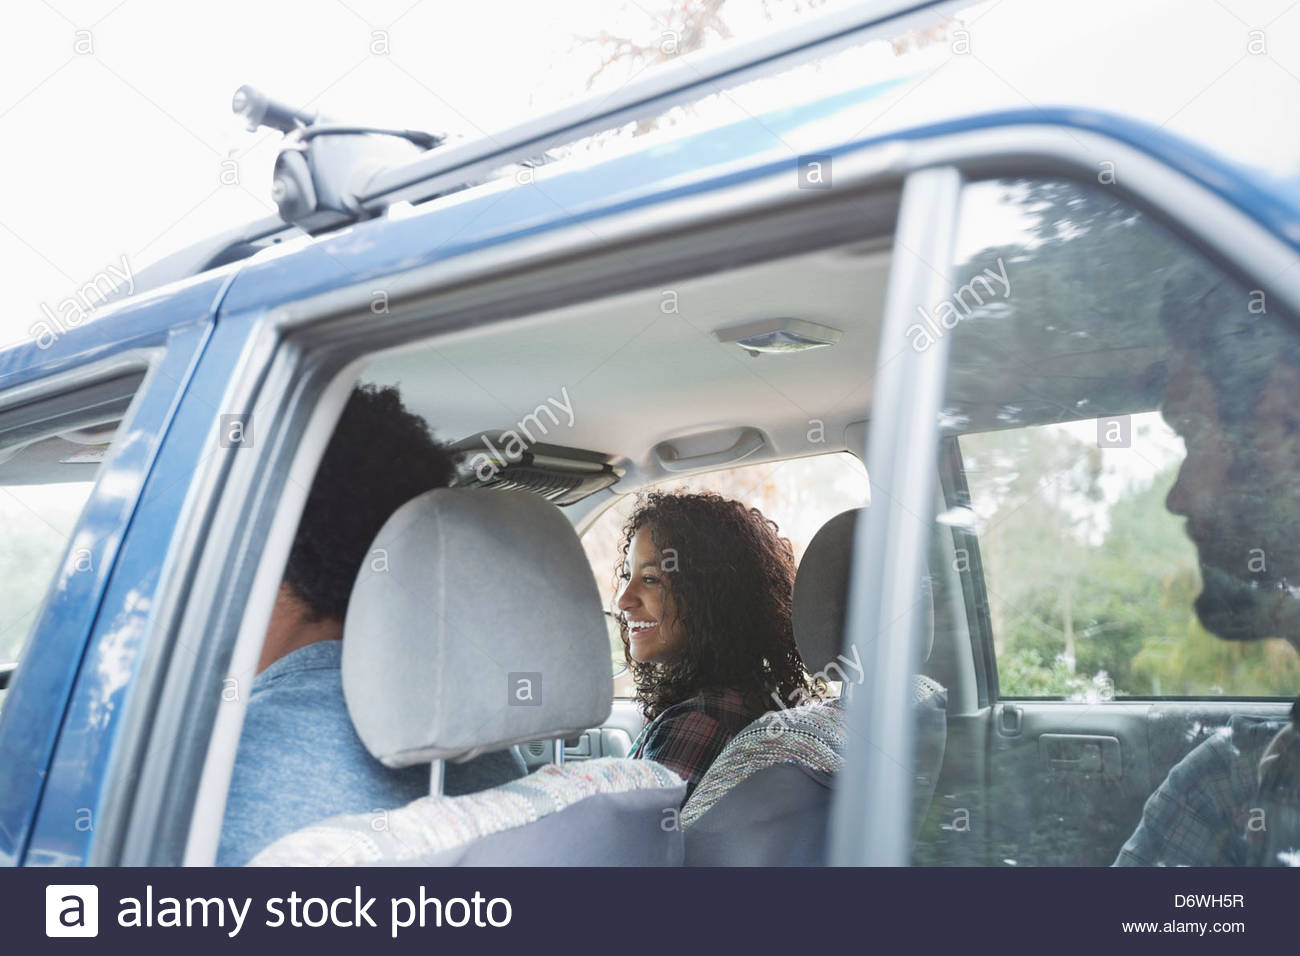 View through window of friends on road trip - Stock Image